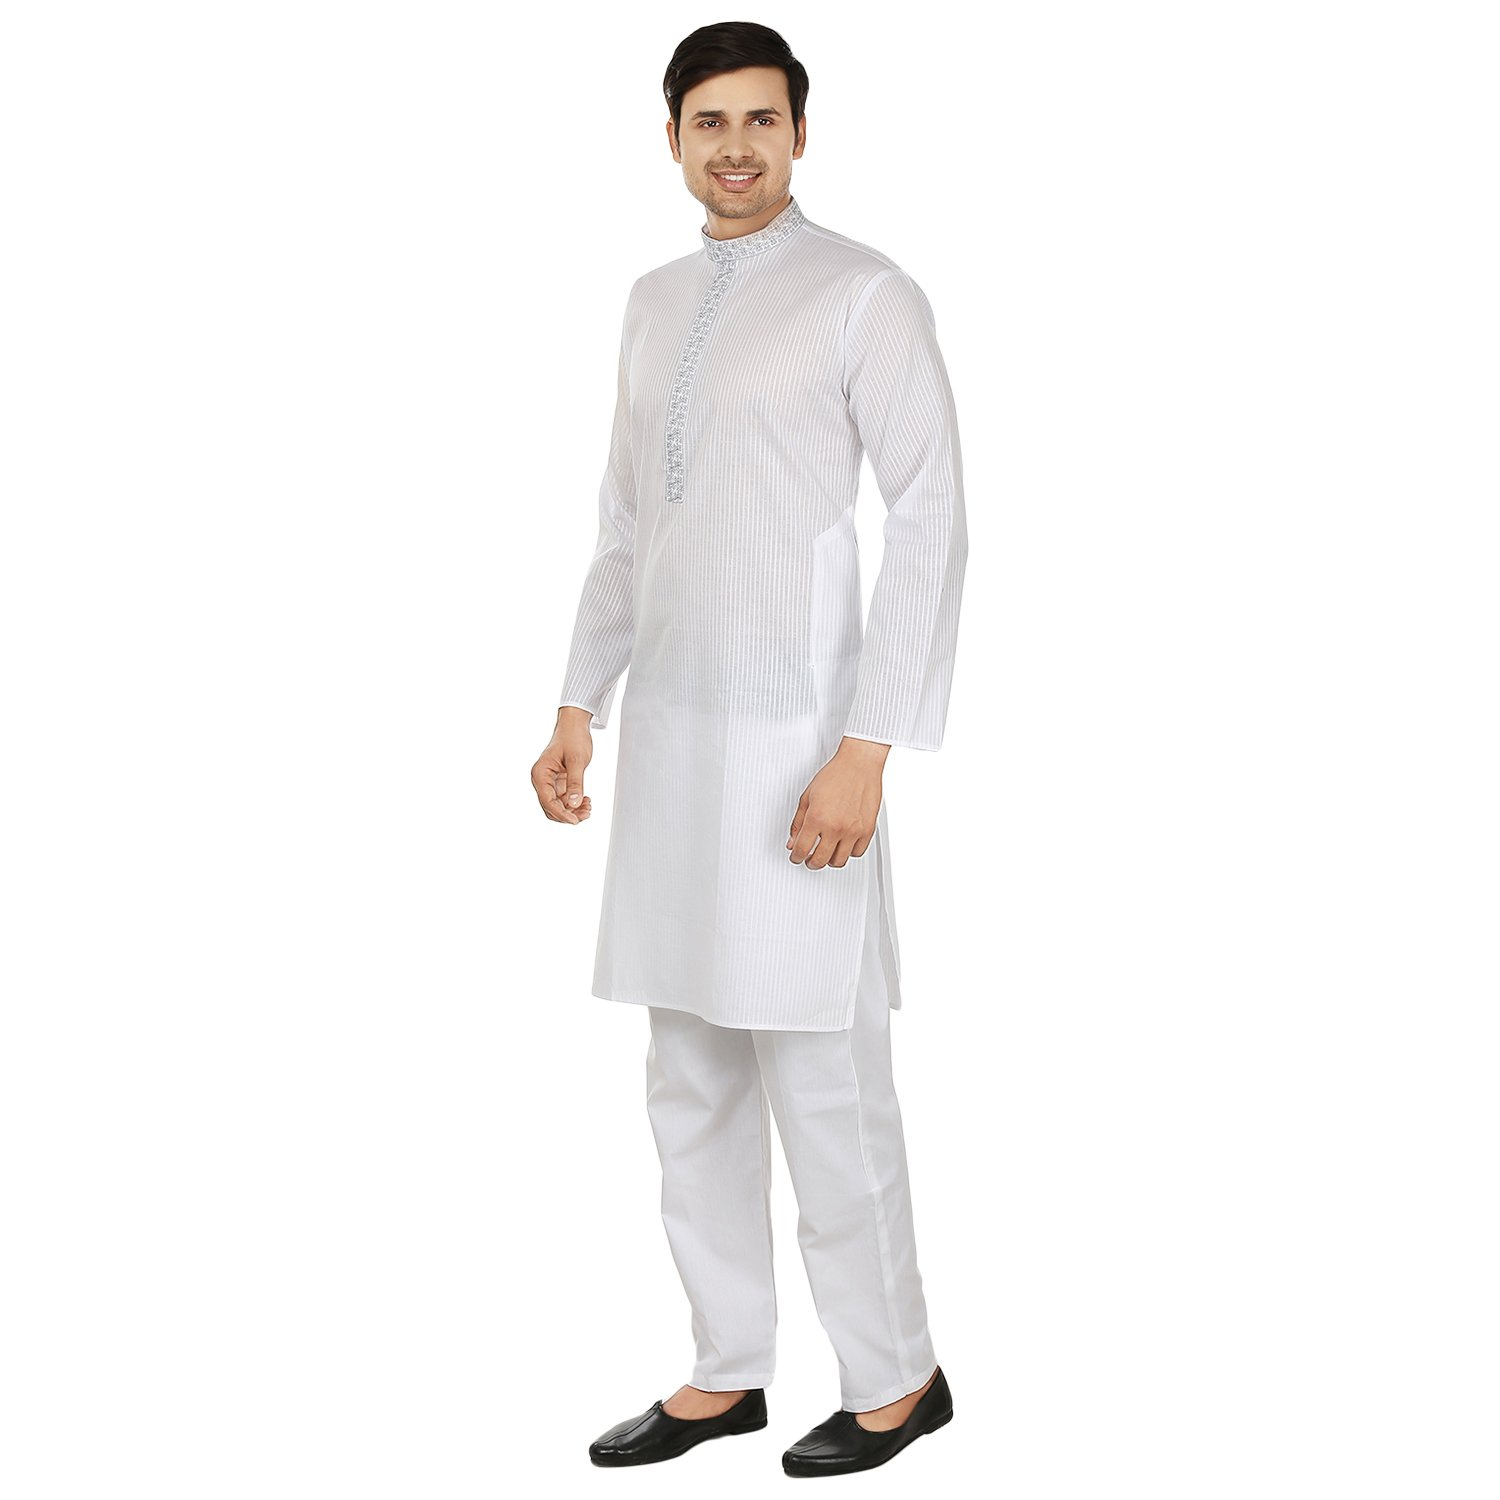 Maple Clothing Mens Kurta Pajama Cotton Embroidered Indian Apparel   Amazon.ca  Clothing   Accessories ef0715b19